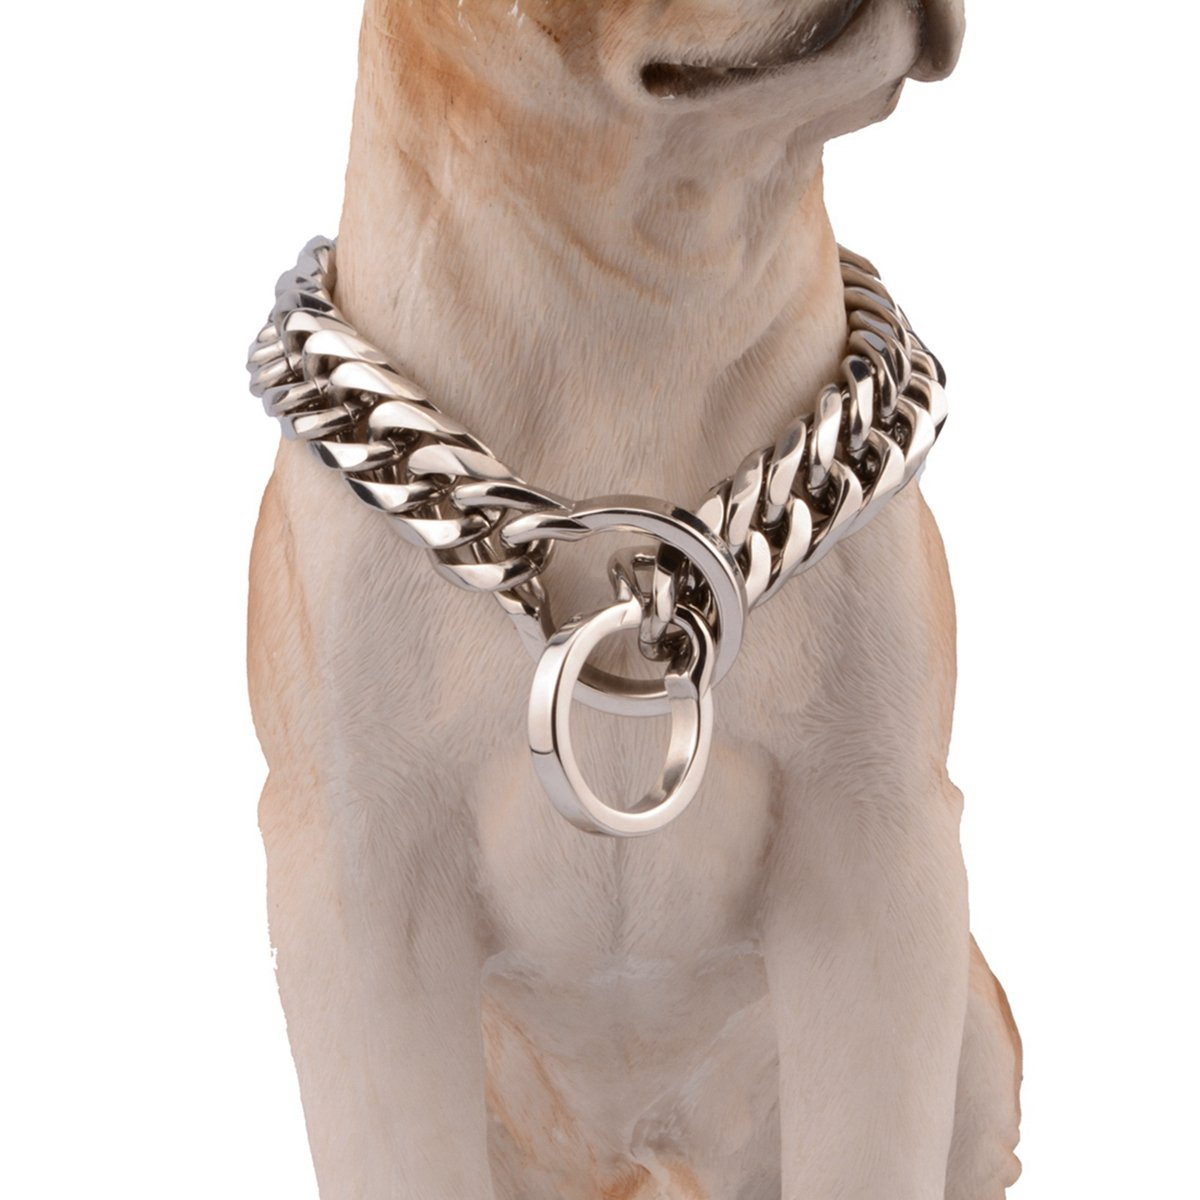 22inch recommend dog's neck 18inch 16 18mm Stainless Steel Silver Pet Dog Choke Curb Chain Collar Necklace For Strong Pit Bull, Big Breeds,14-36 Inches (18mm Wide, 22inch recommend dog's neck 18inch)